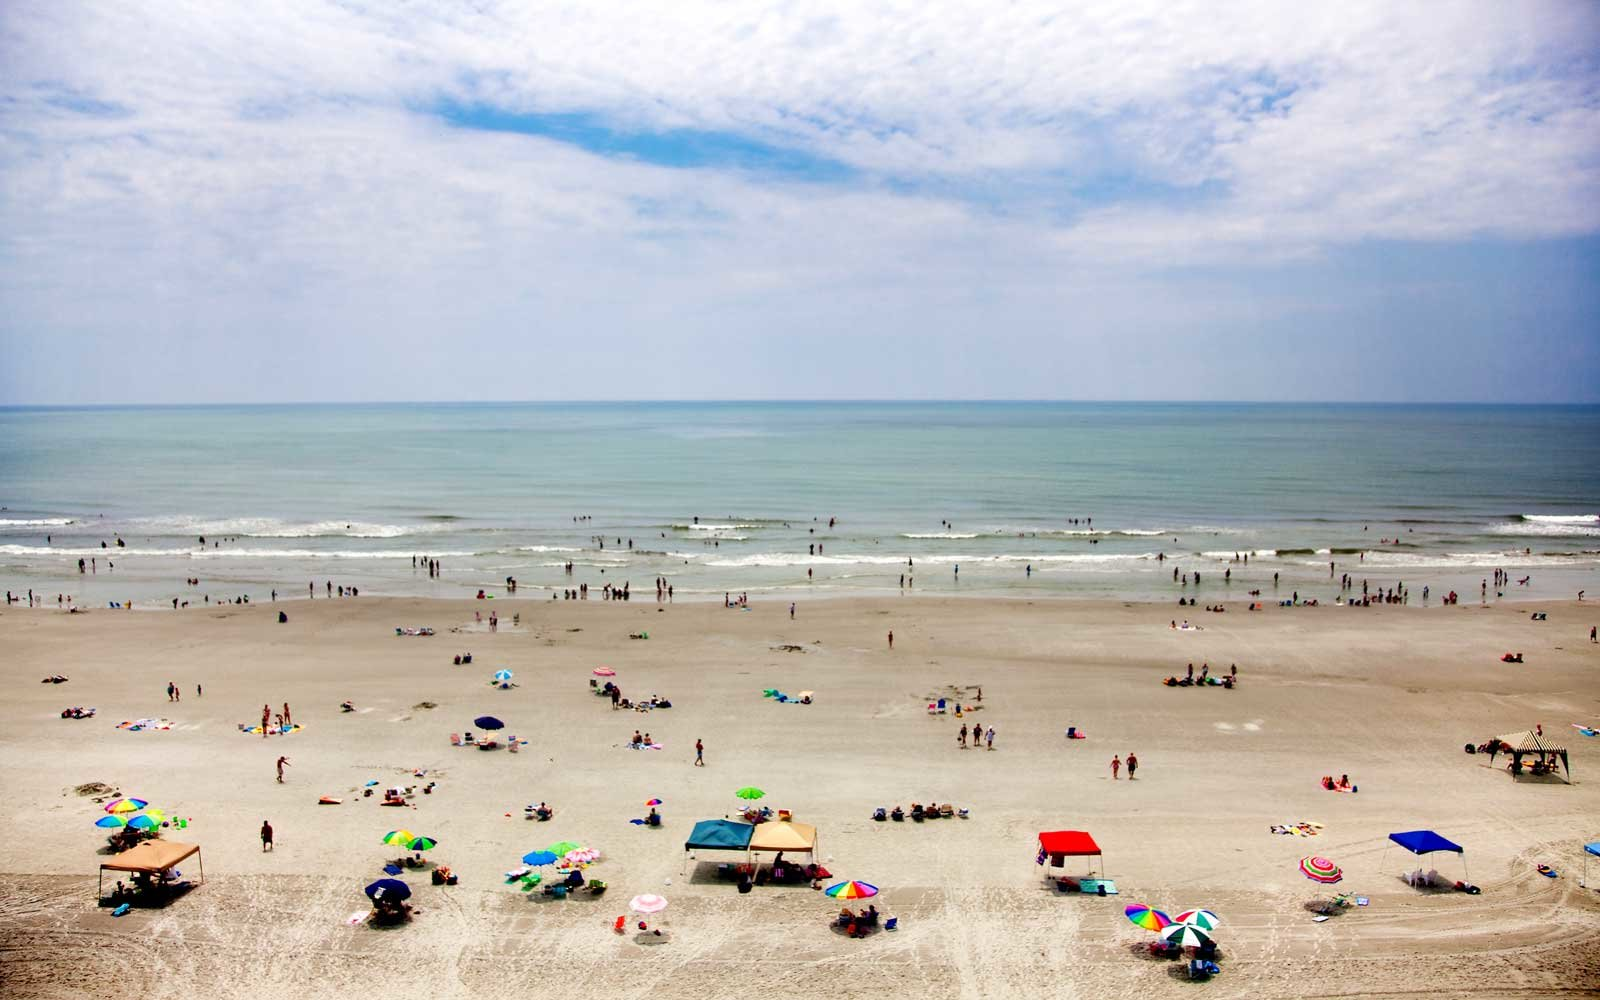 Cherry grove beach, North Myrtle Beach, SC